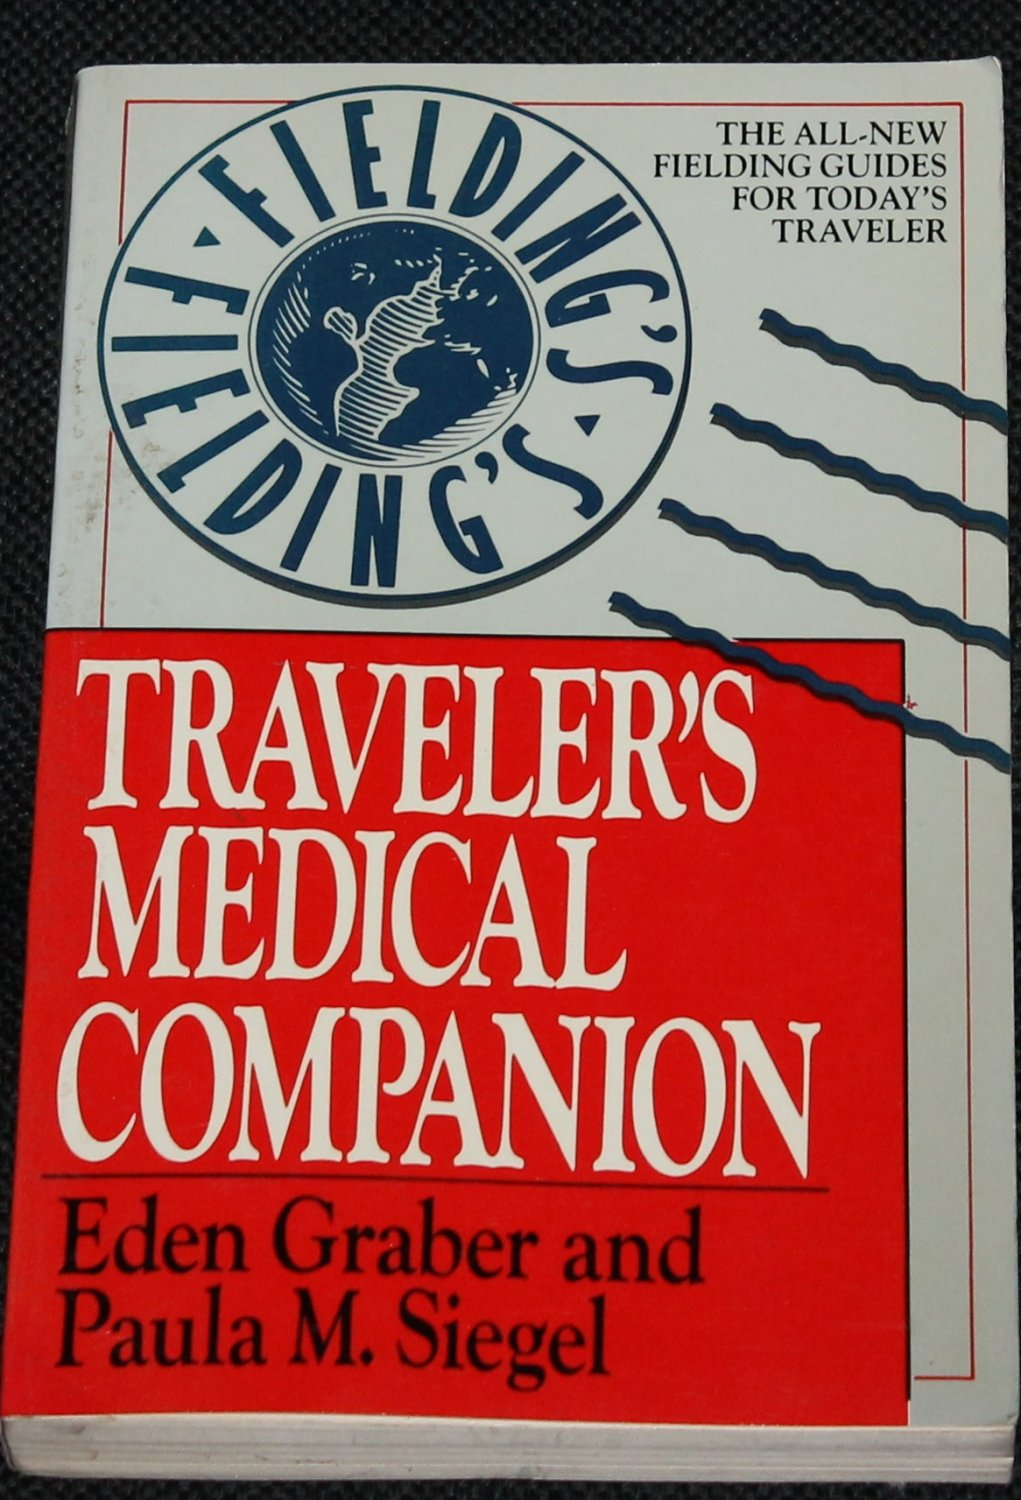 Traveler's Medical Companion book by Eden Graber & Paula M. Siegel